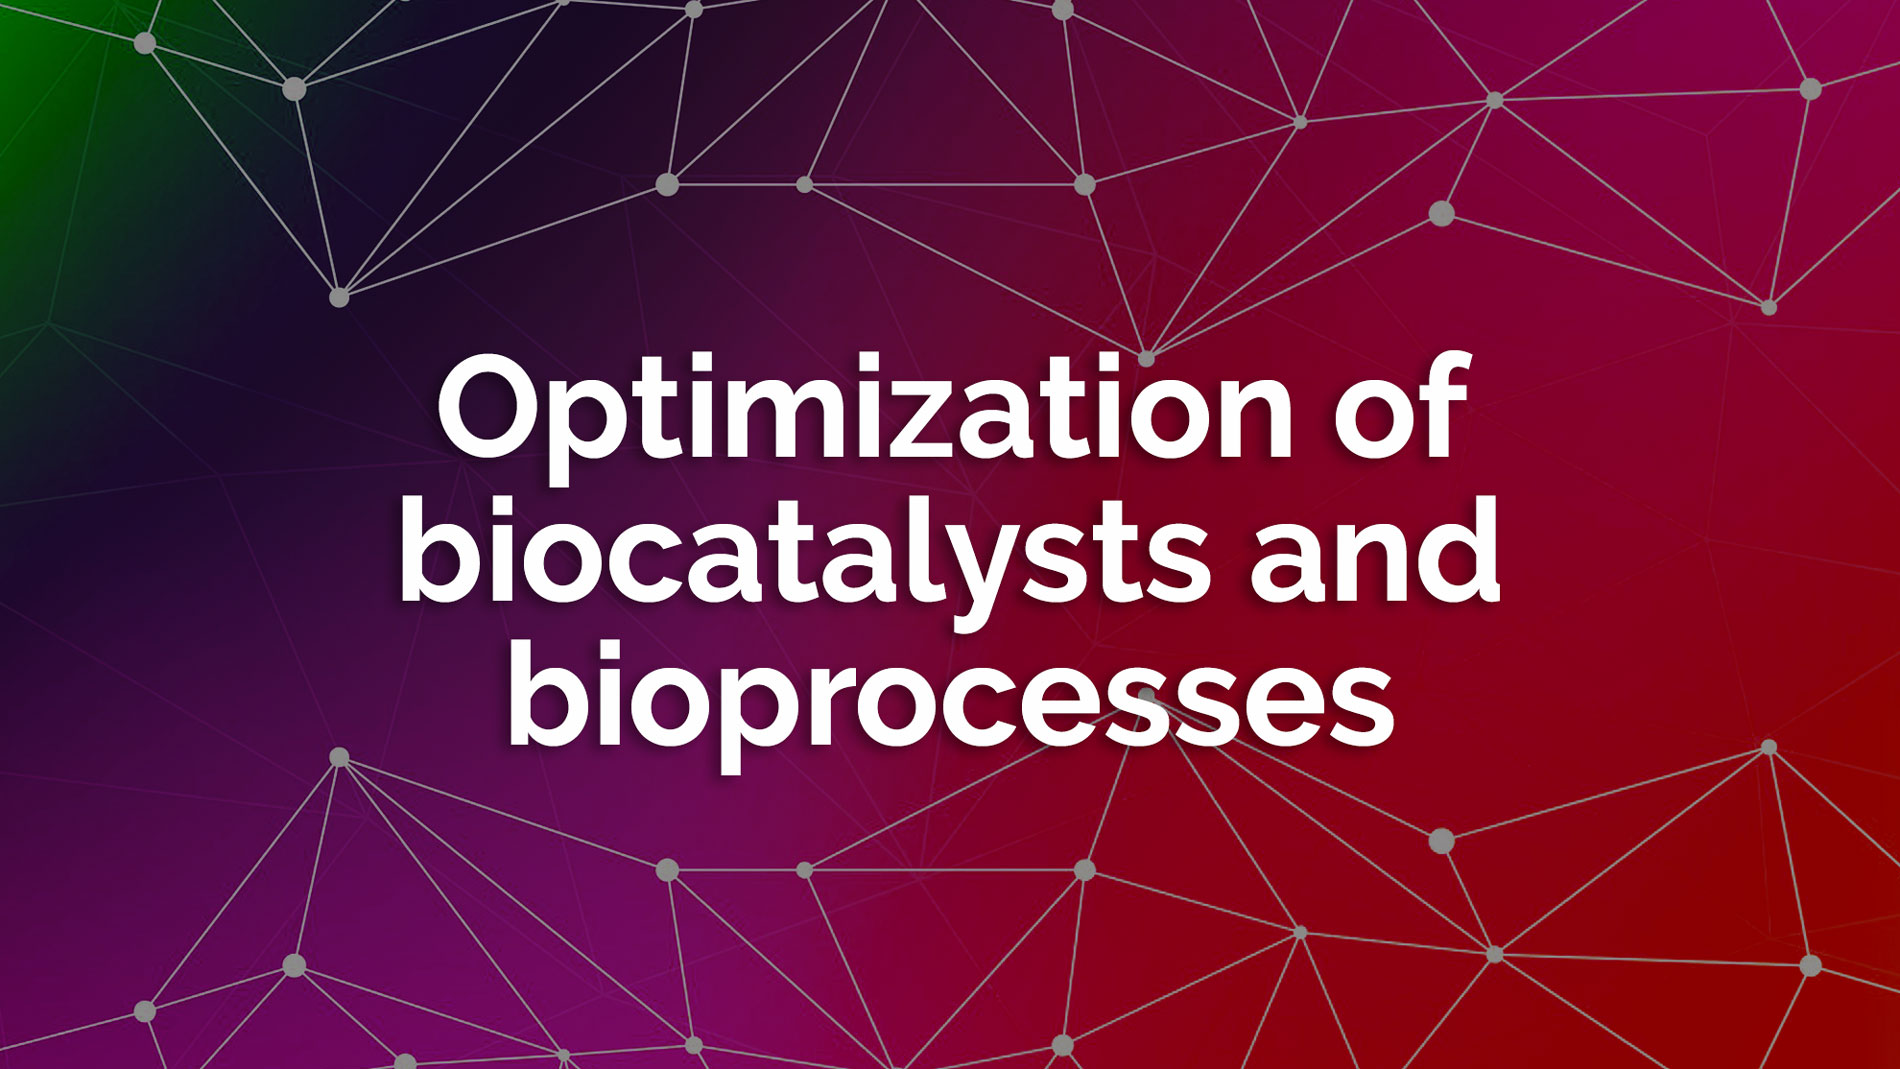 Optimization biocatalysts bioprocesses